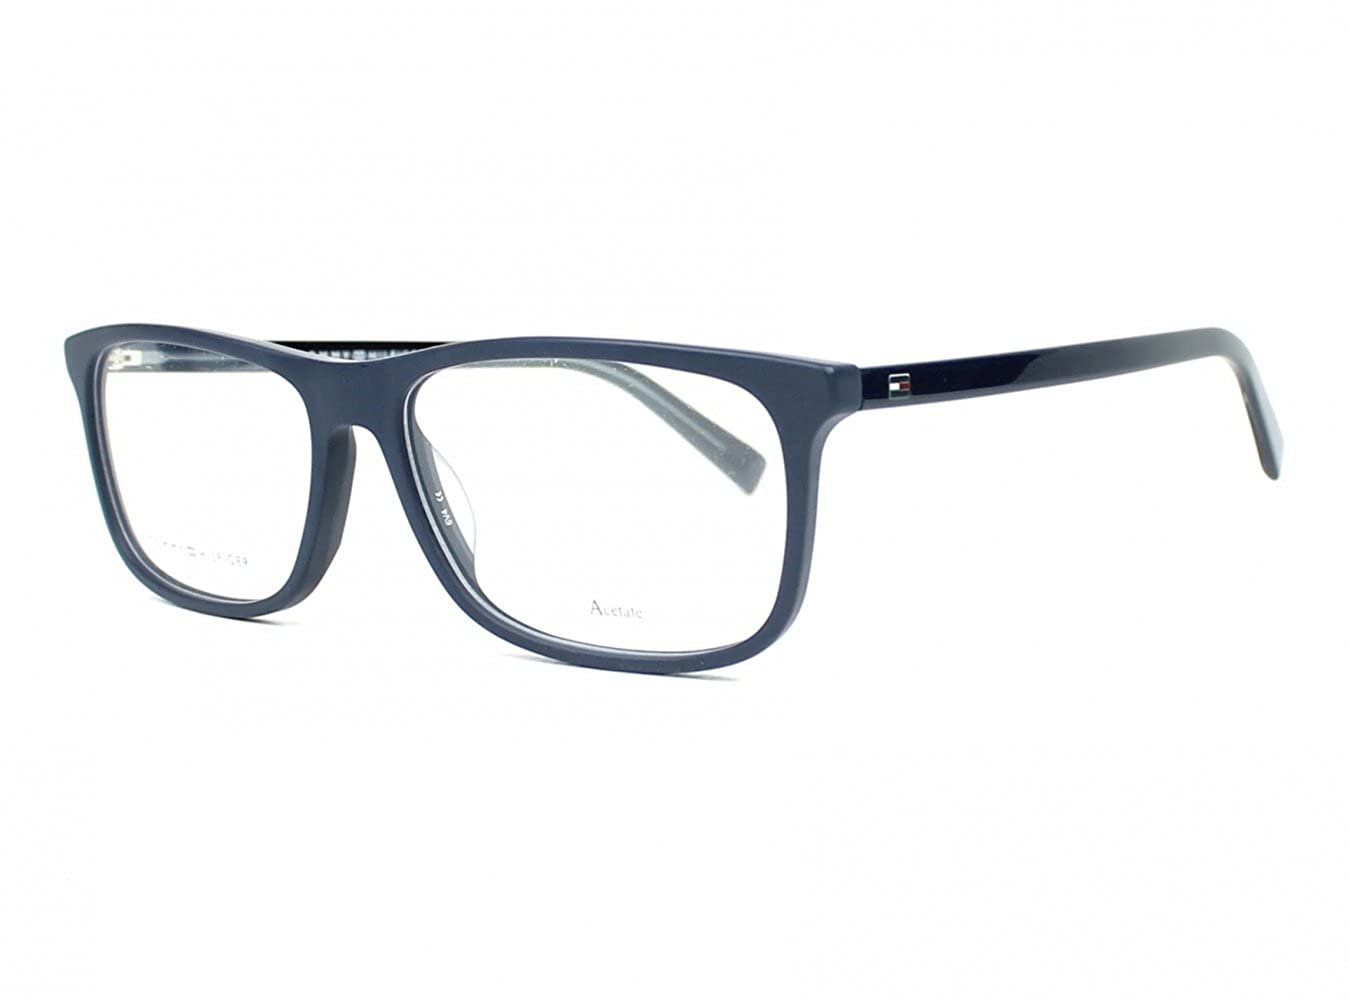 5db0547ebc5 Optical frame Tommy Hilfiger Acetate Blue (TH 1452 ACB) at Amazon Men s  Clothing store